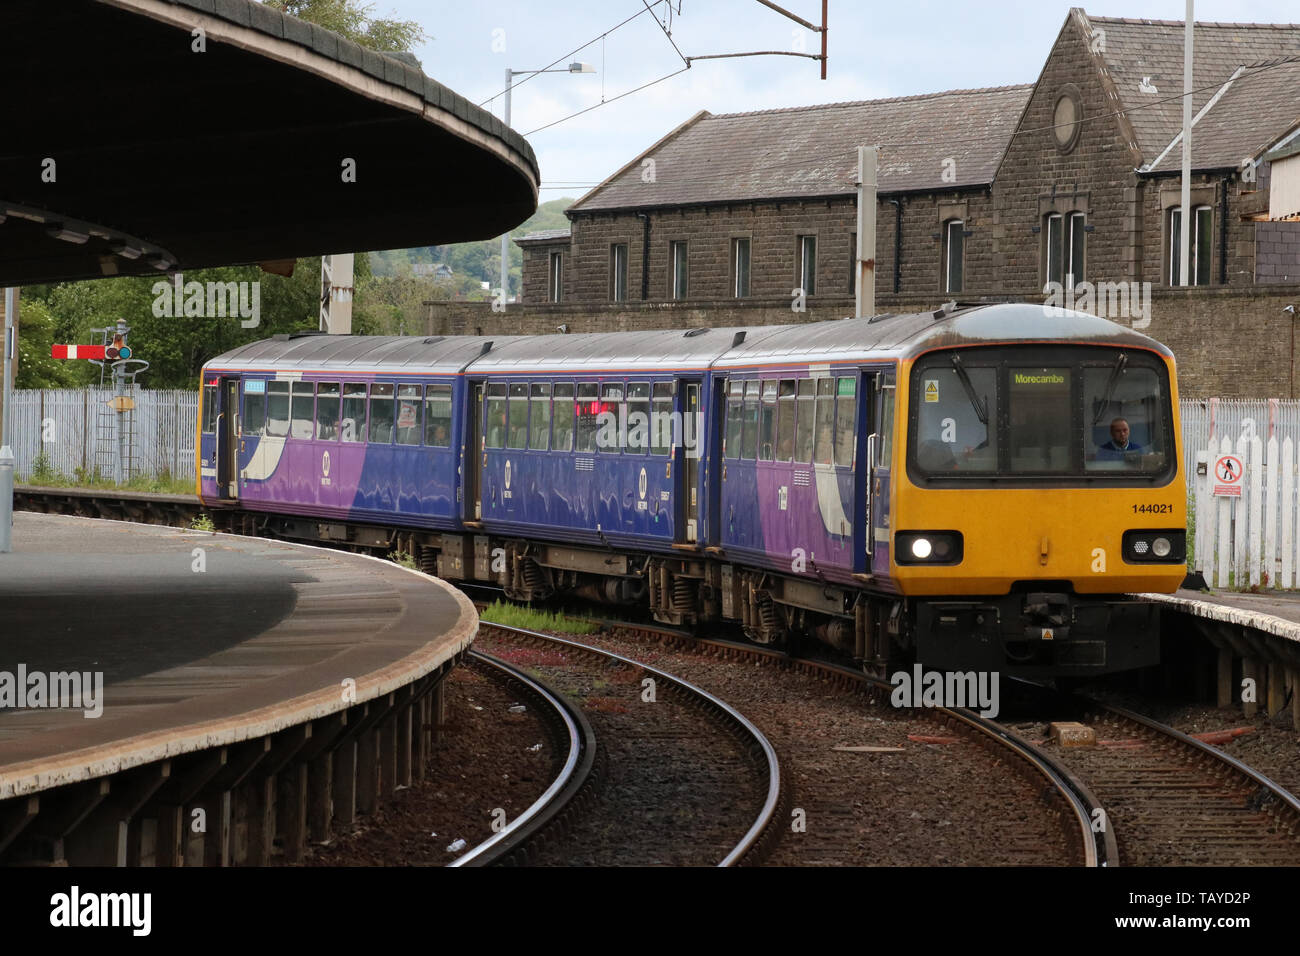 Class 144 pacer diesel multiple unit in Northern livery arriving at platform 1 at Carnforth railway station with passenger service on 27th May 2019. - Stock Image